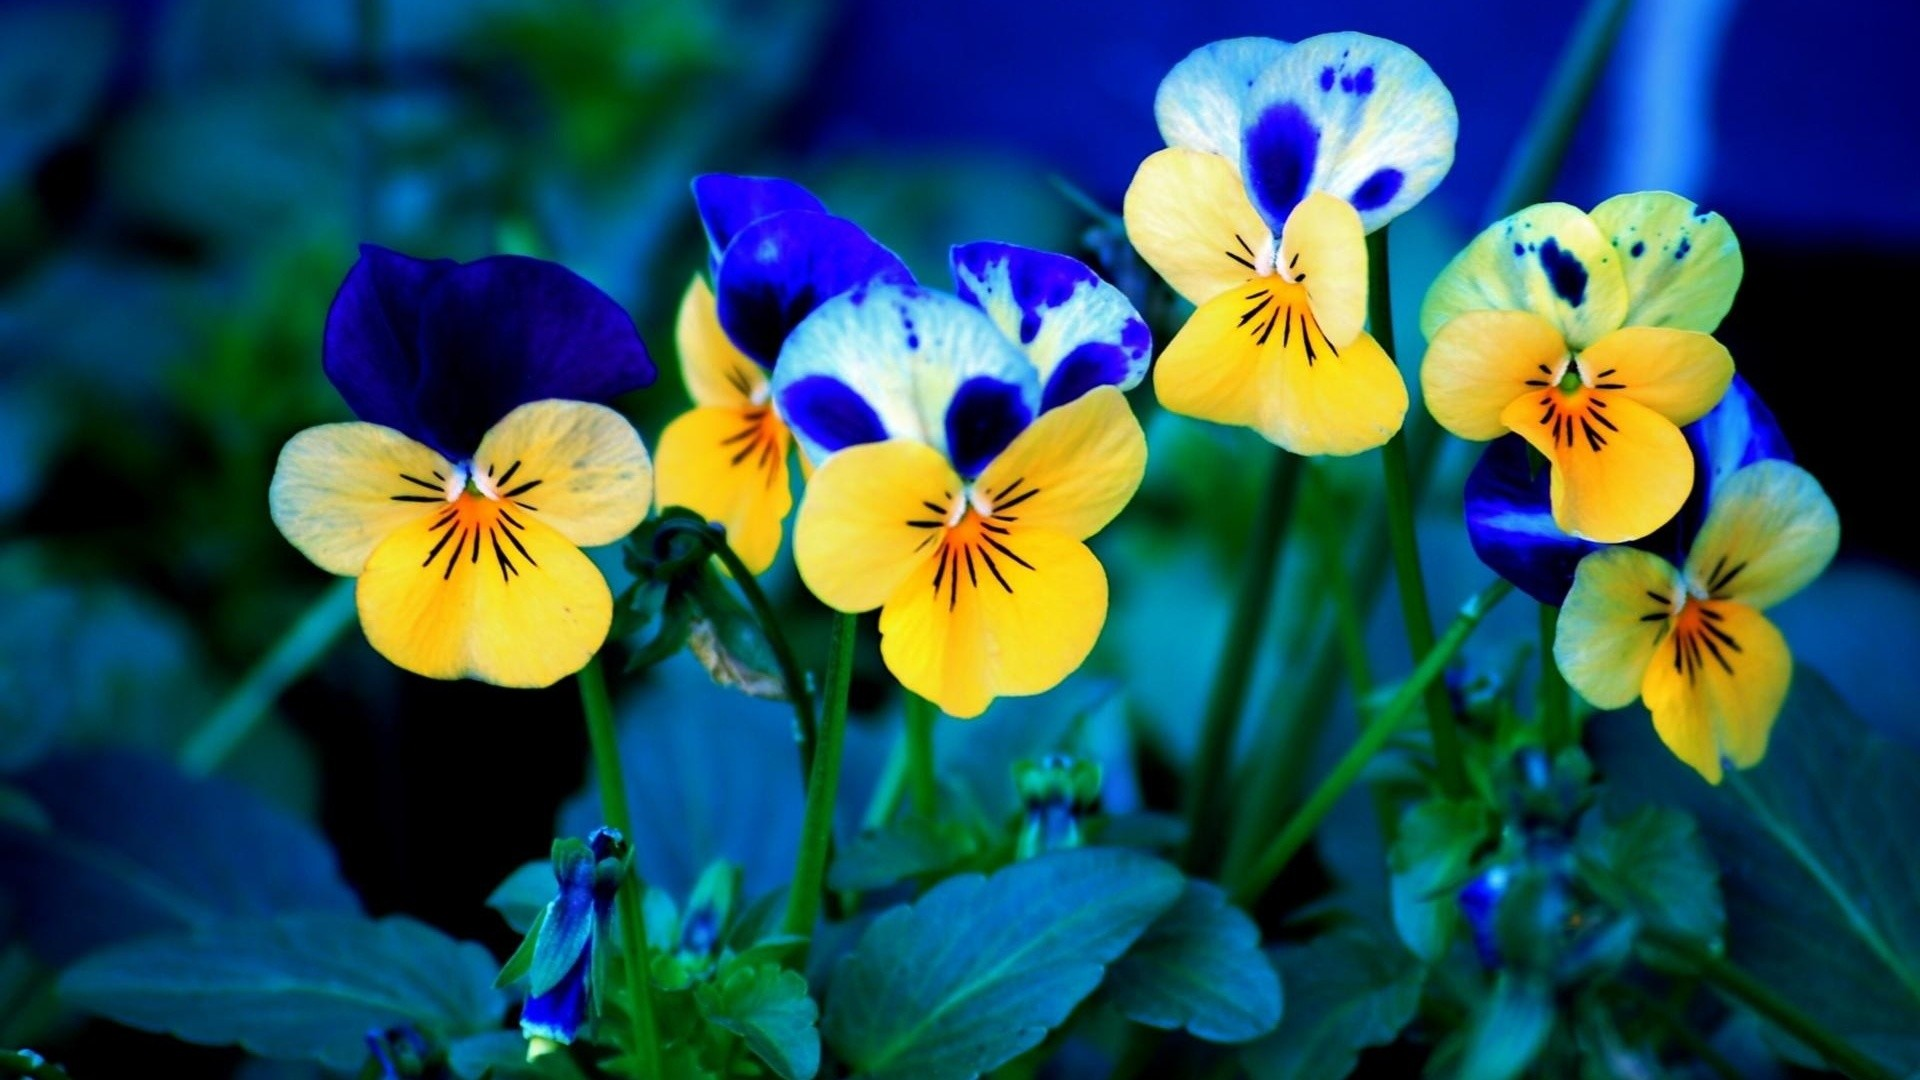 1920x1080 Spring Flowers Wallpapers Desktop Background Is 4K Wallpaper